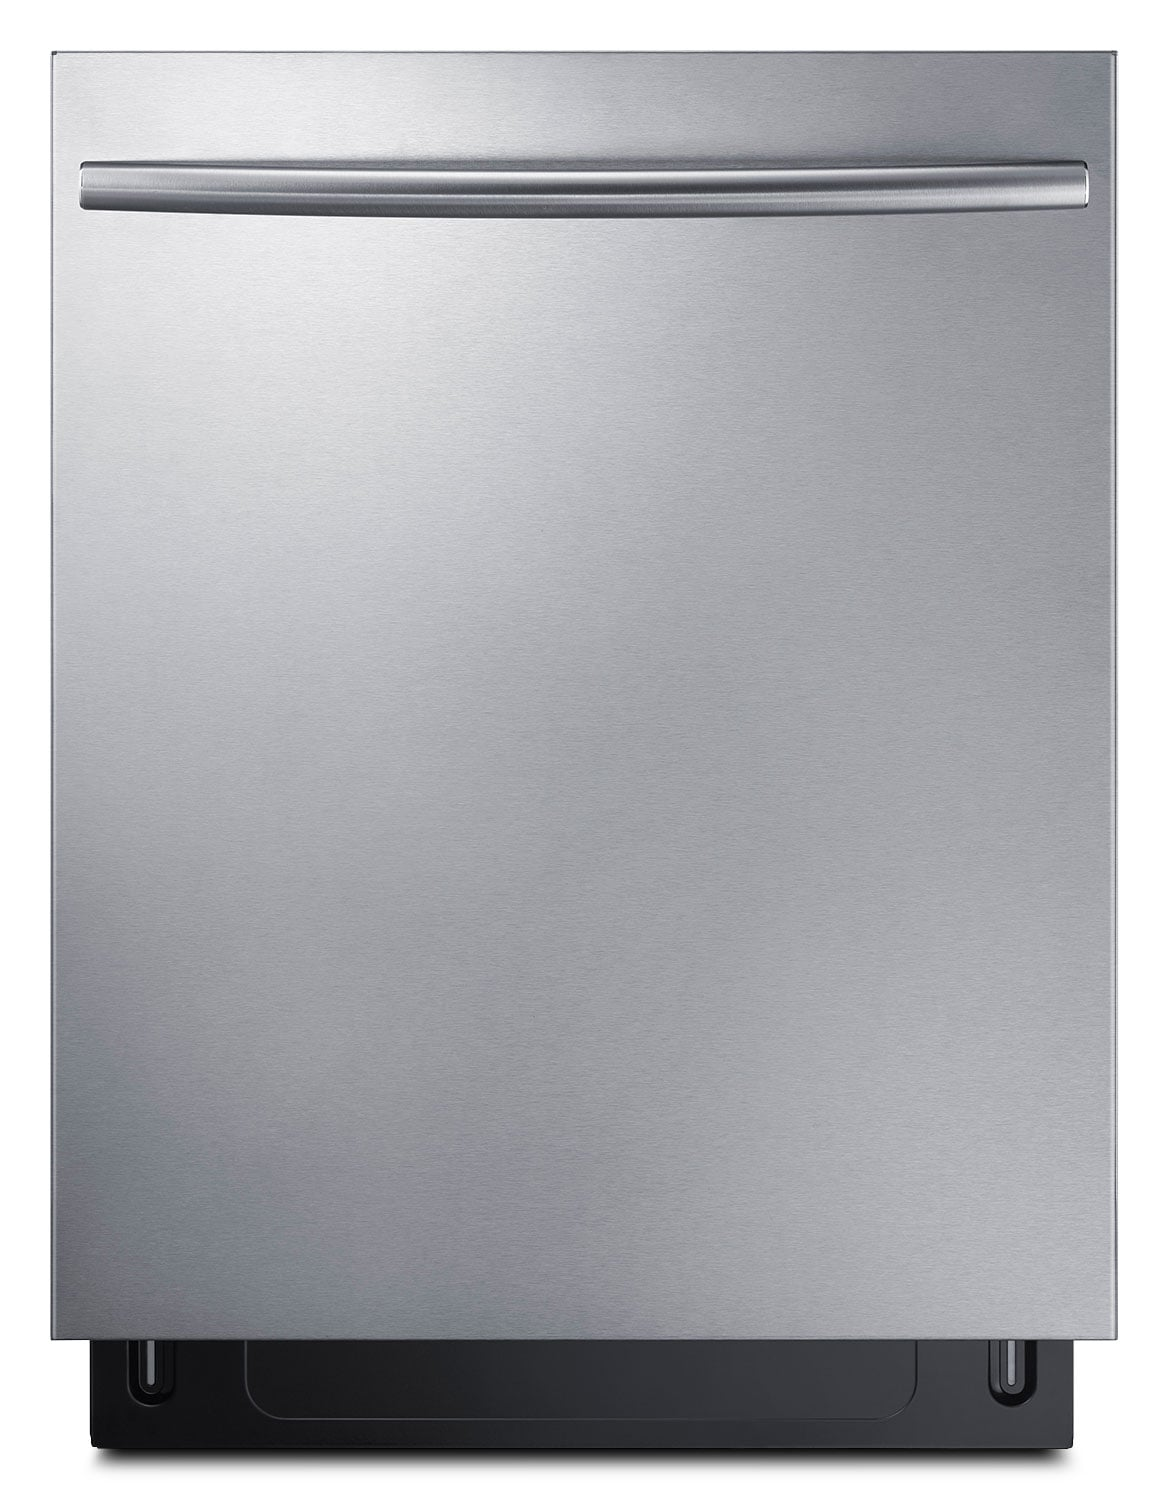 Clean-Up - Samsung Built-In Dishwasher with Auto-Open Drying – DW80K7050US/AC